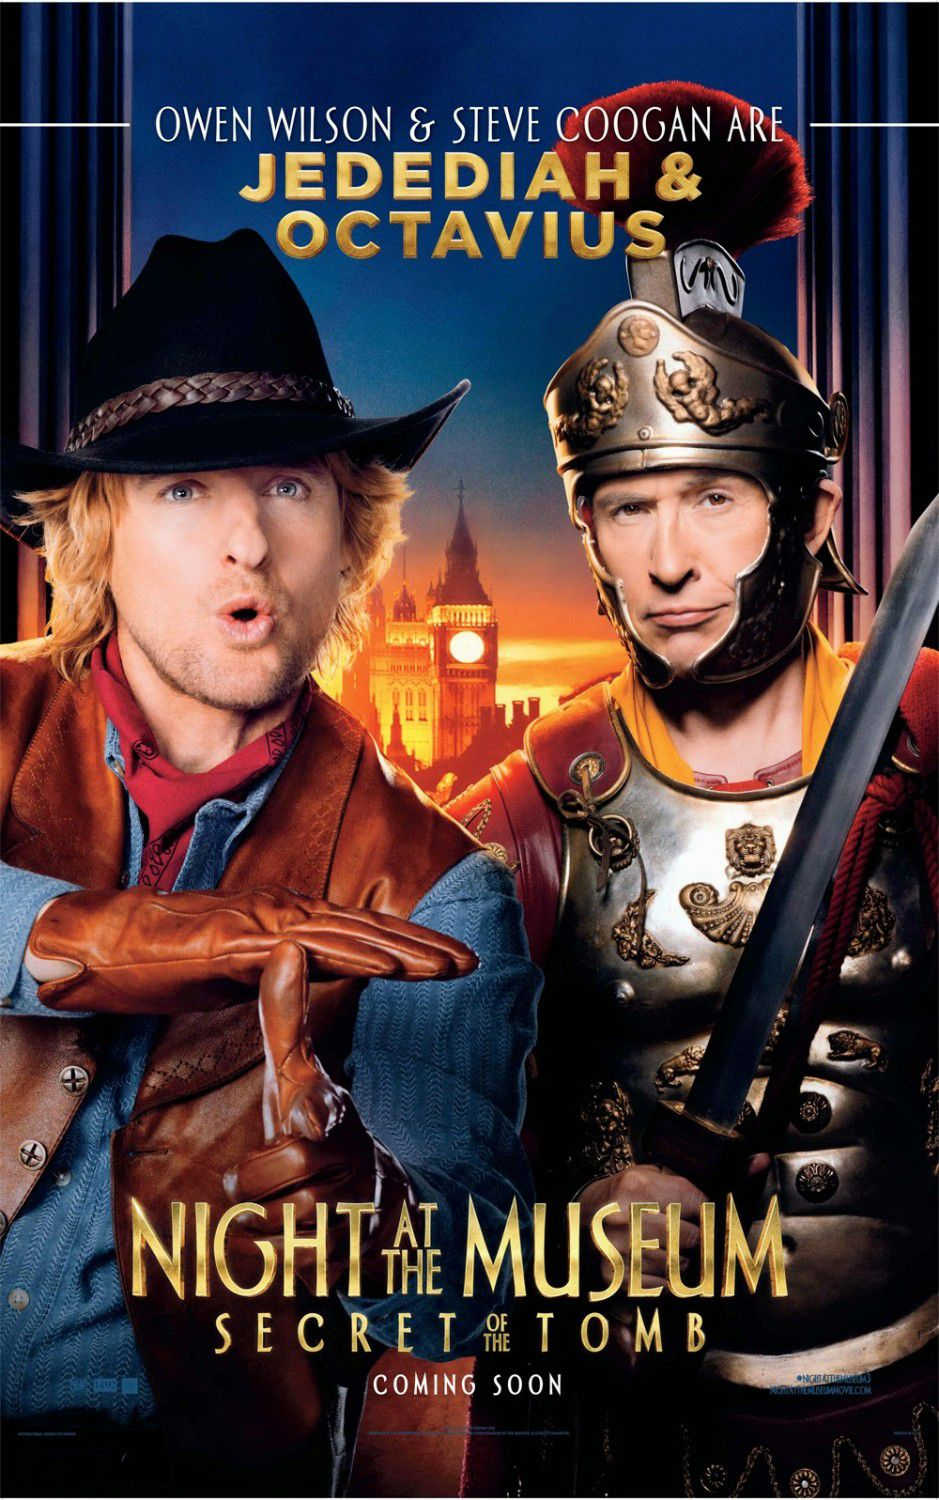 Una Notte al Museo 3 - Night at the Museum 3 - Secret of the Tomb - poster - Octavius (Steve Coogan) and Jebediah (Owen Wilson)